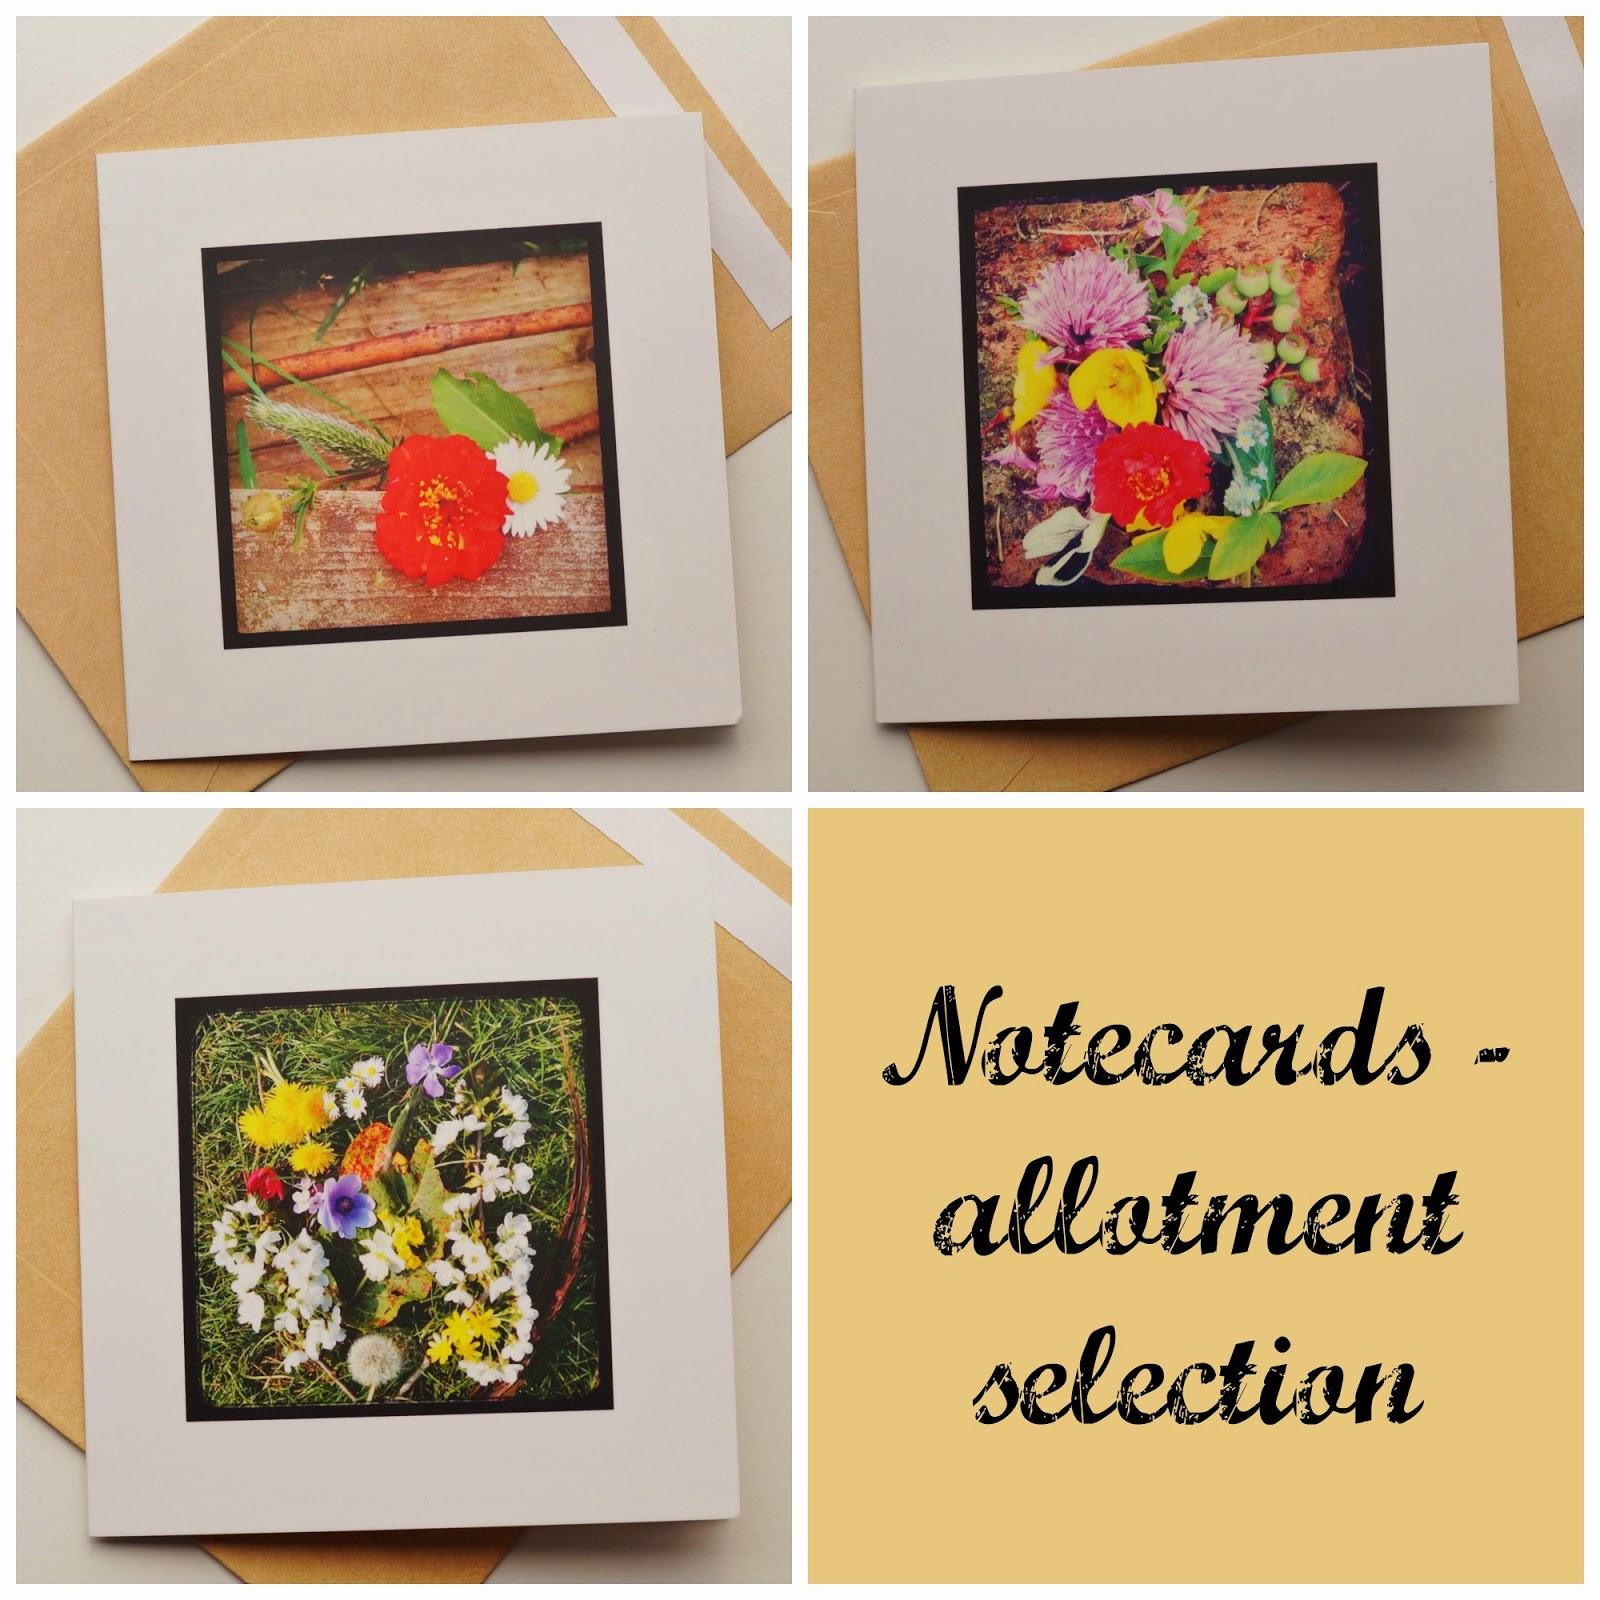 Allotment card collection property of Carrie Gault - ohcherryblossomtattoo.com